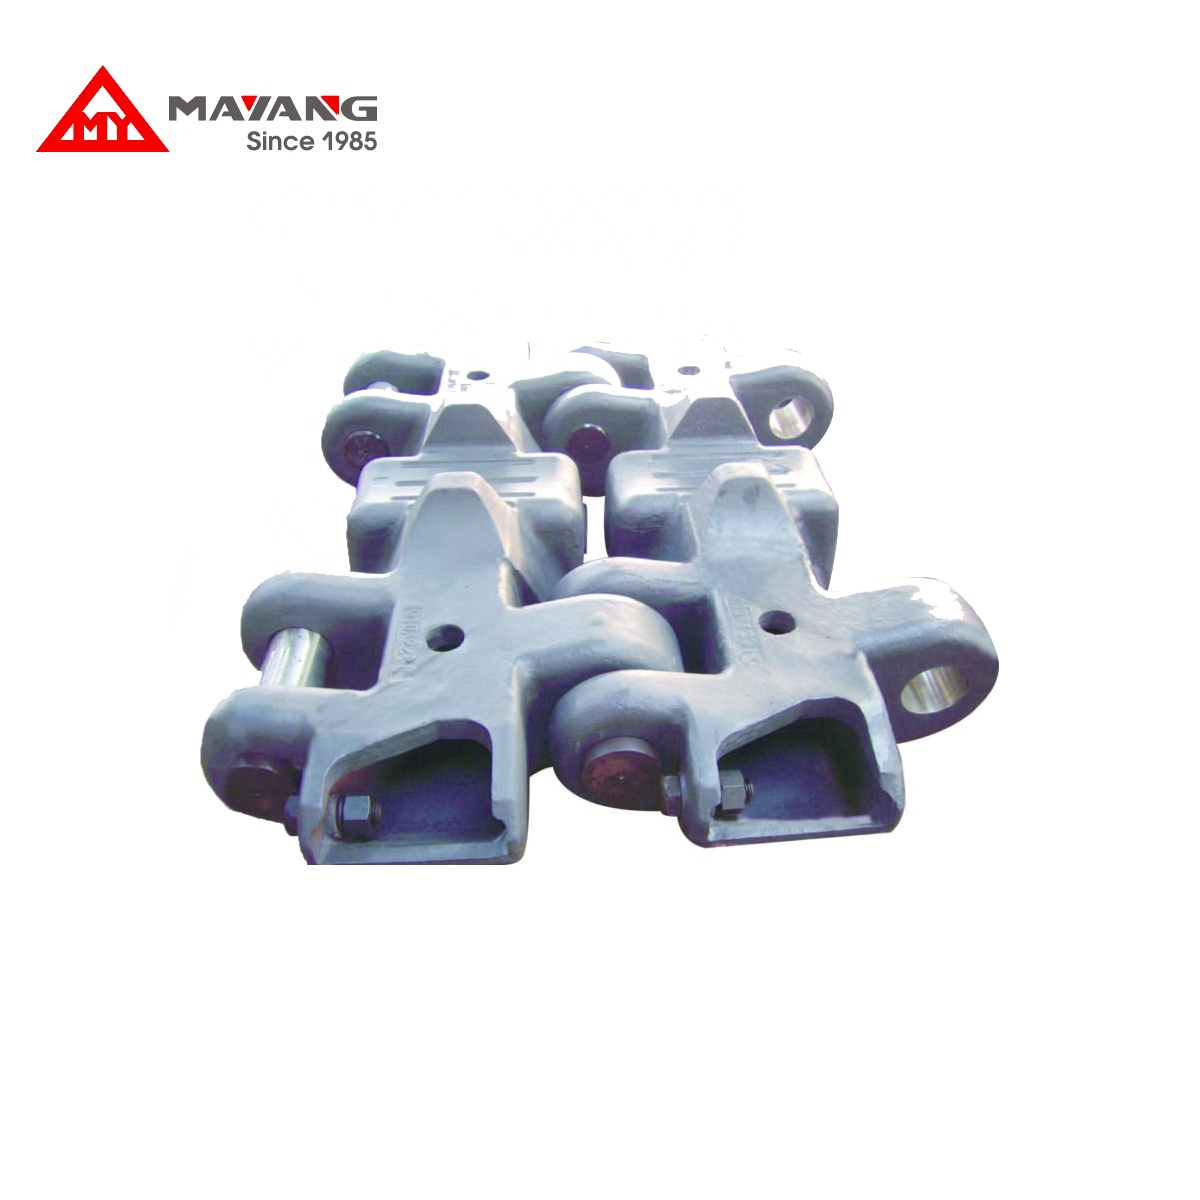 Chrome casting รองเท้า construction machinery สำหรับ excavator